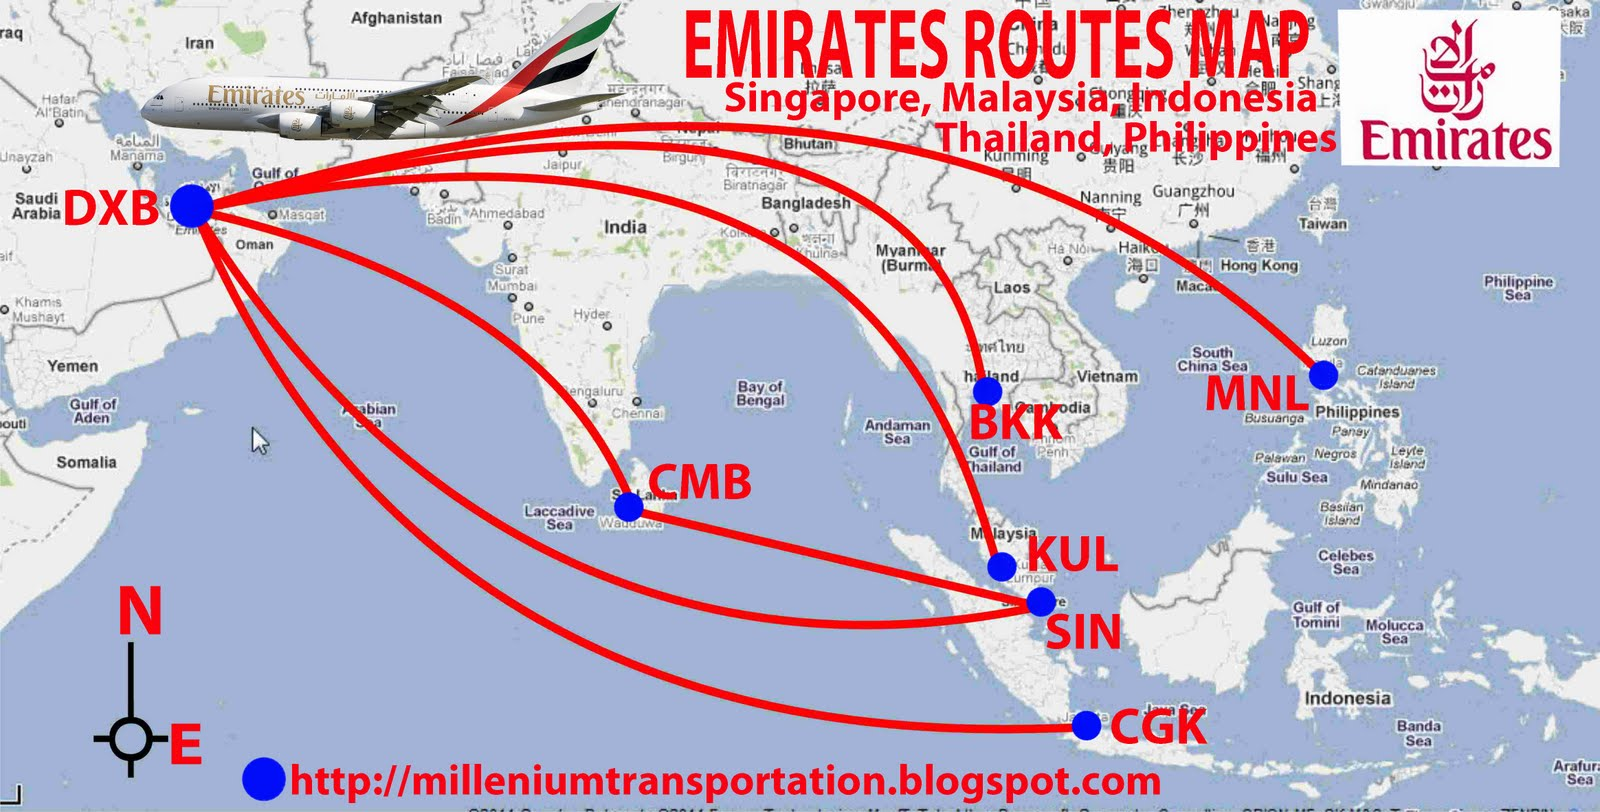 routes map: Emirates routes map